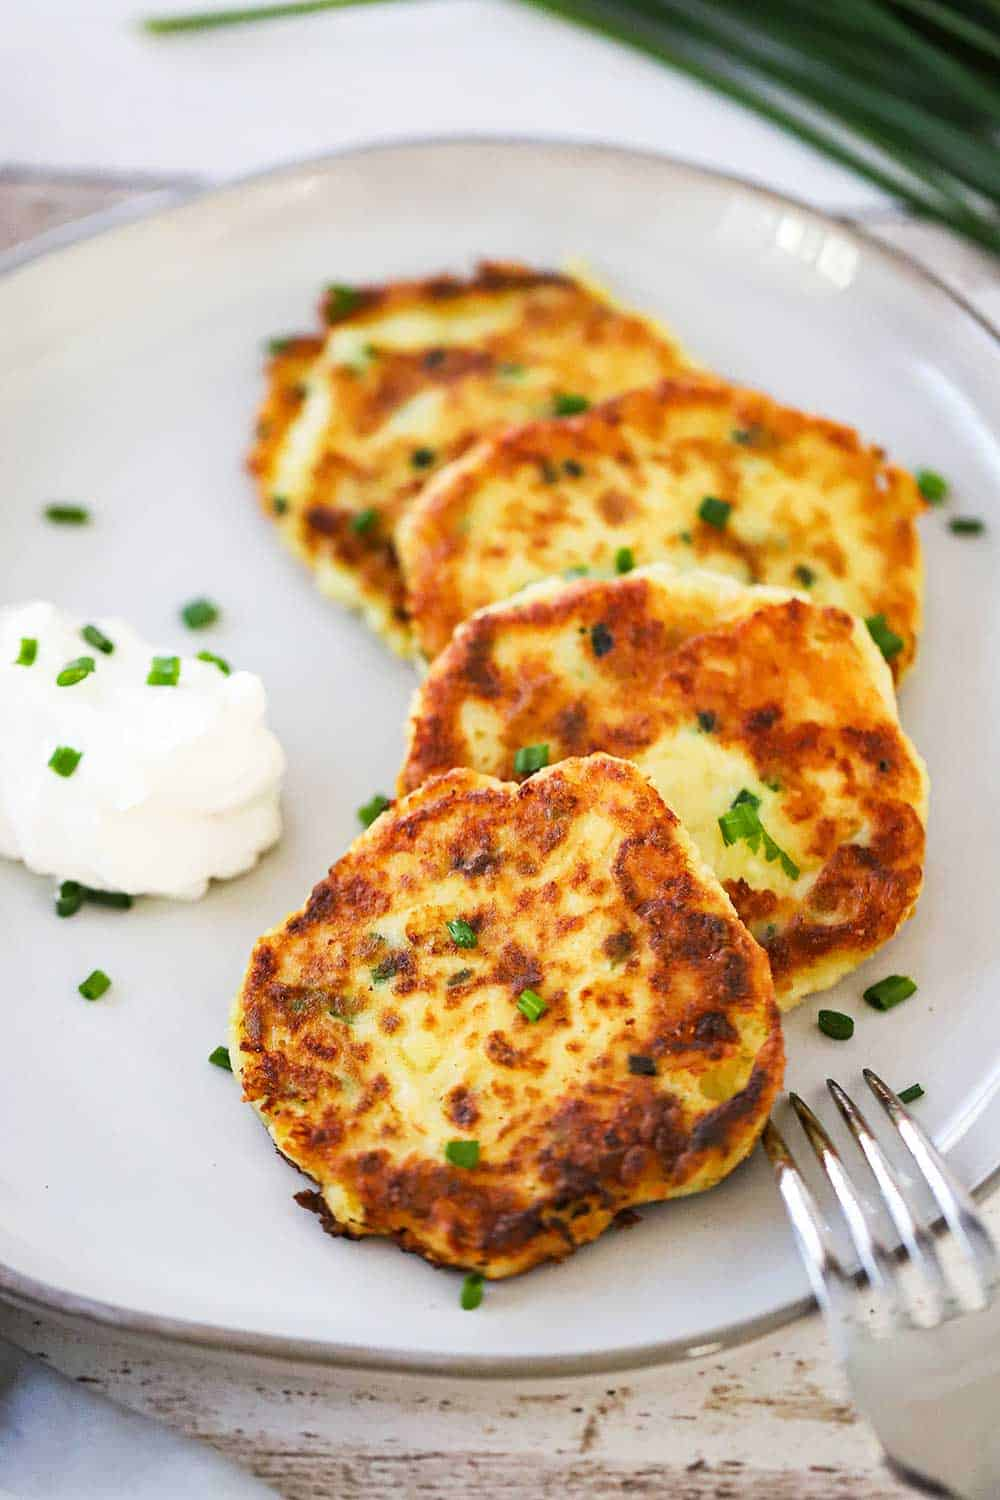 5 leftover mashed potato cakes layered on a plate with a dollop of sour cream nearby and sprinkled with chopped chives.